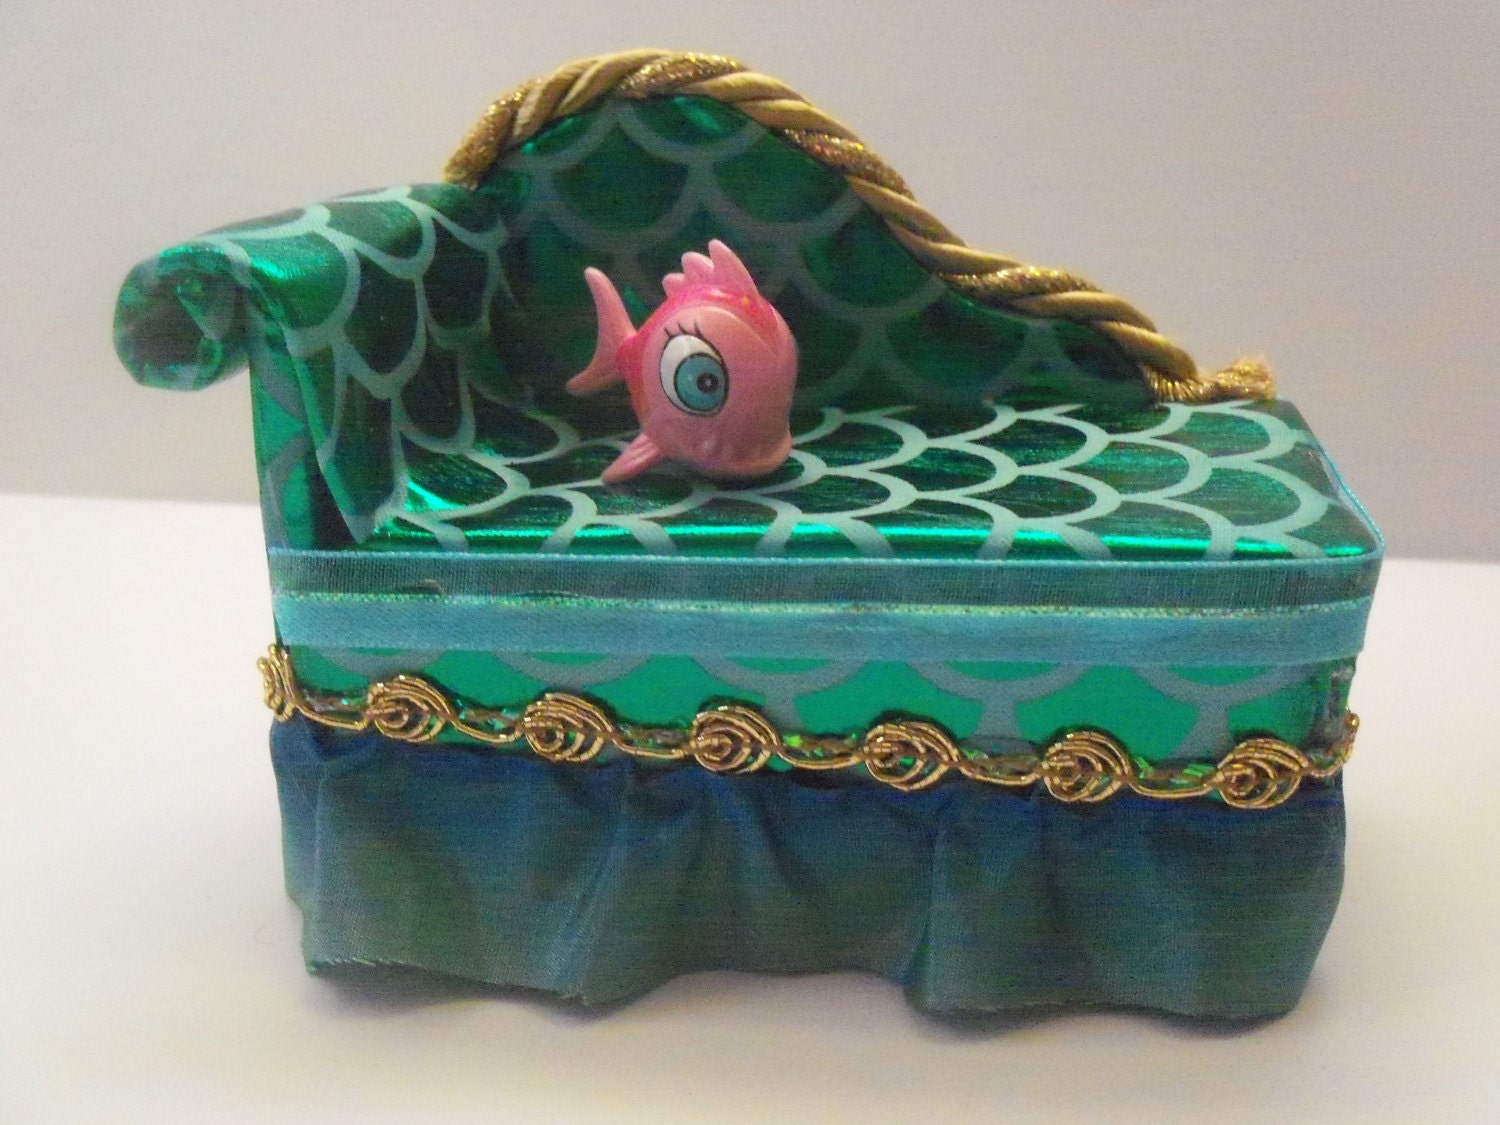 Miniature Monster High Furniture Chaise Lounge For